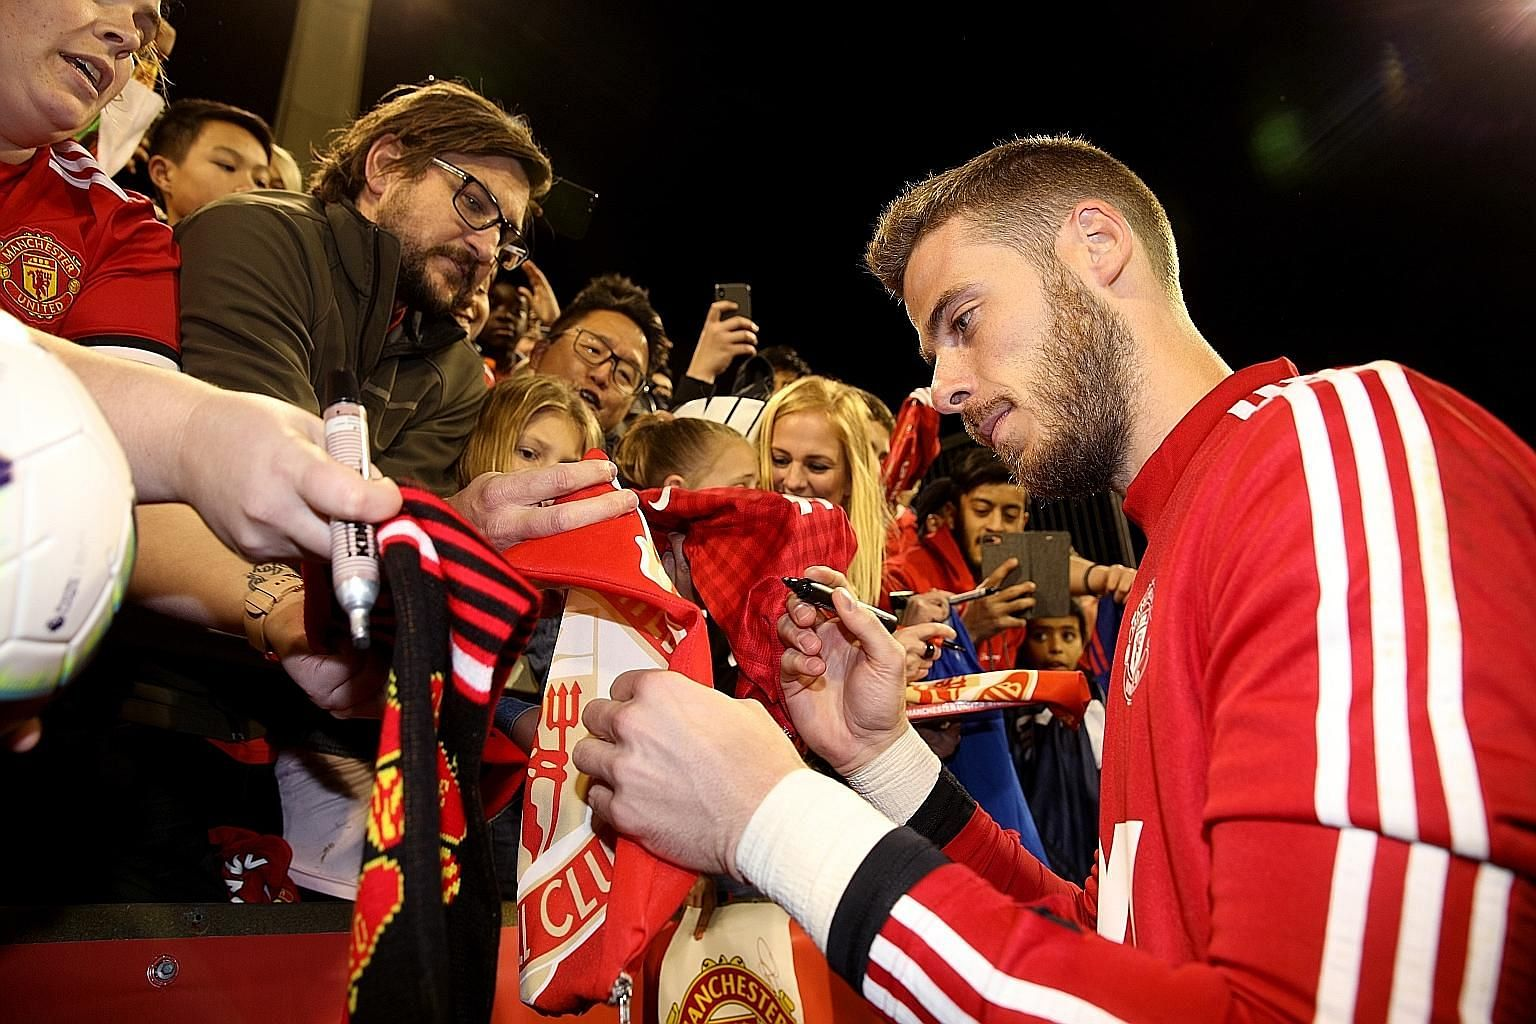 David de Gea signing autographs after a training session at the Perth Stadium last Thursday during Manchester United's pre-season tour. The goalkeeper is demanding to be among the best-paid players at the club.